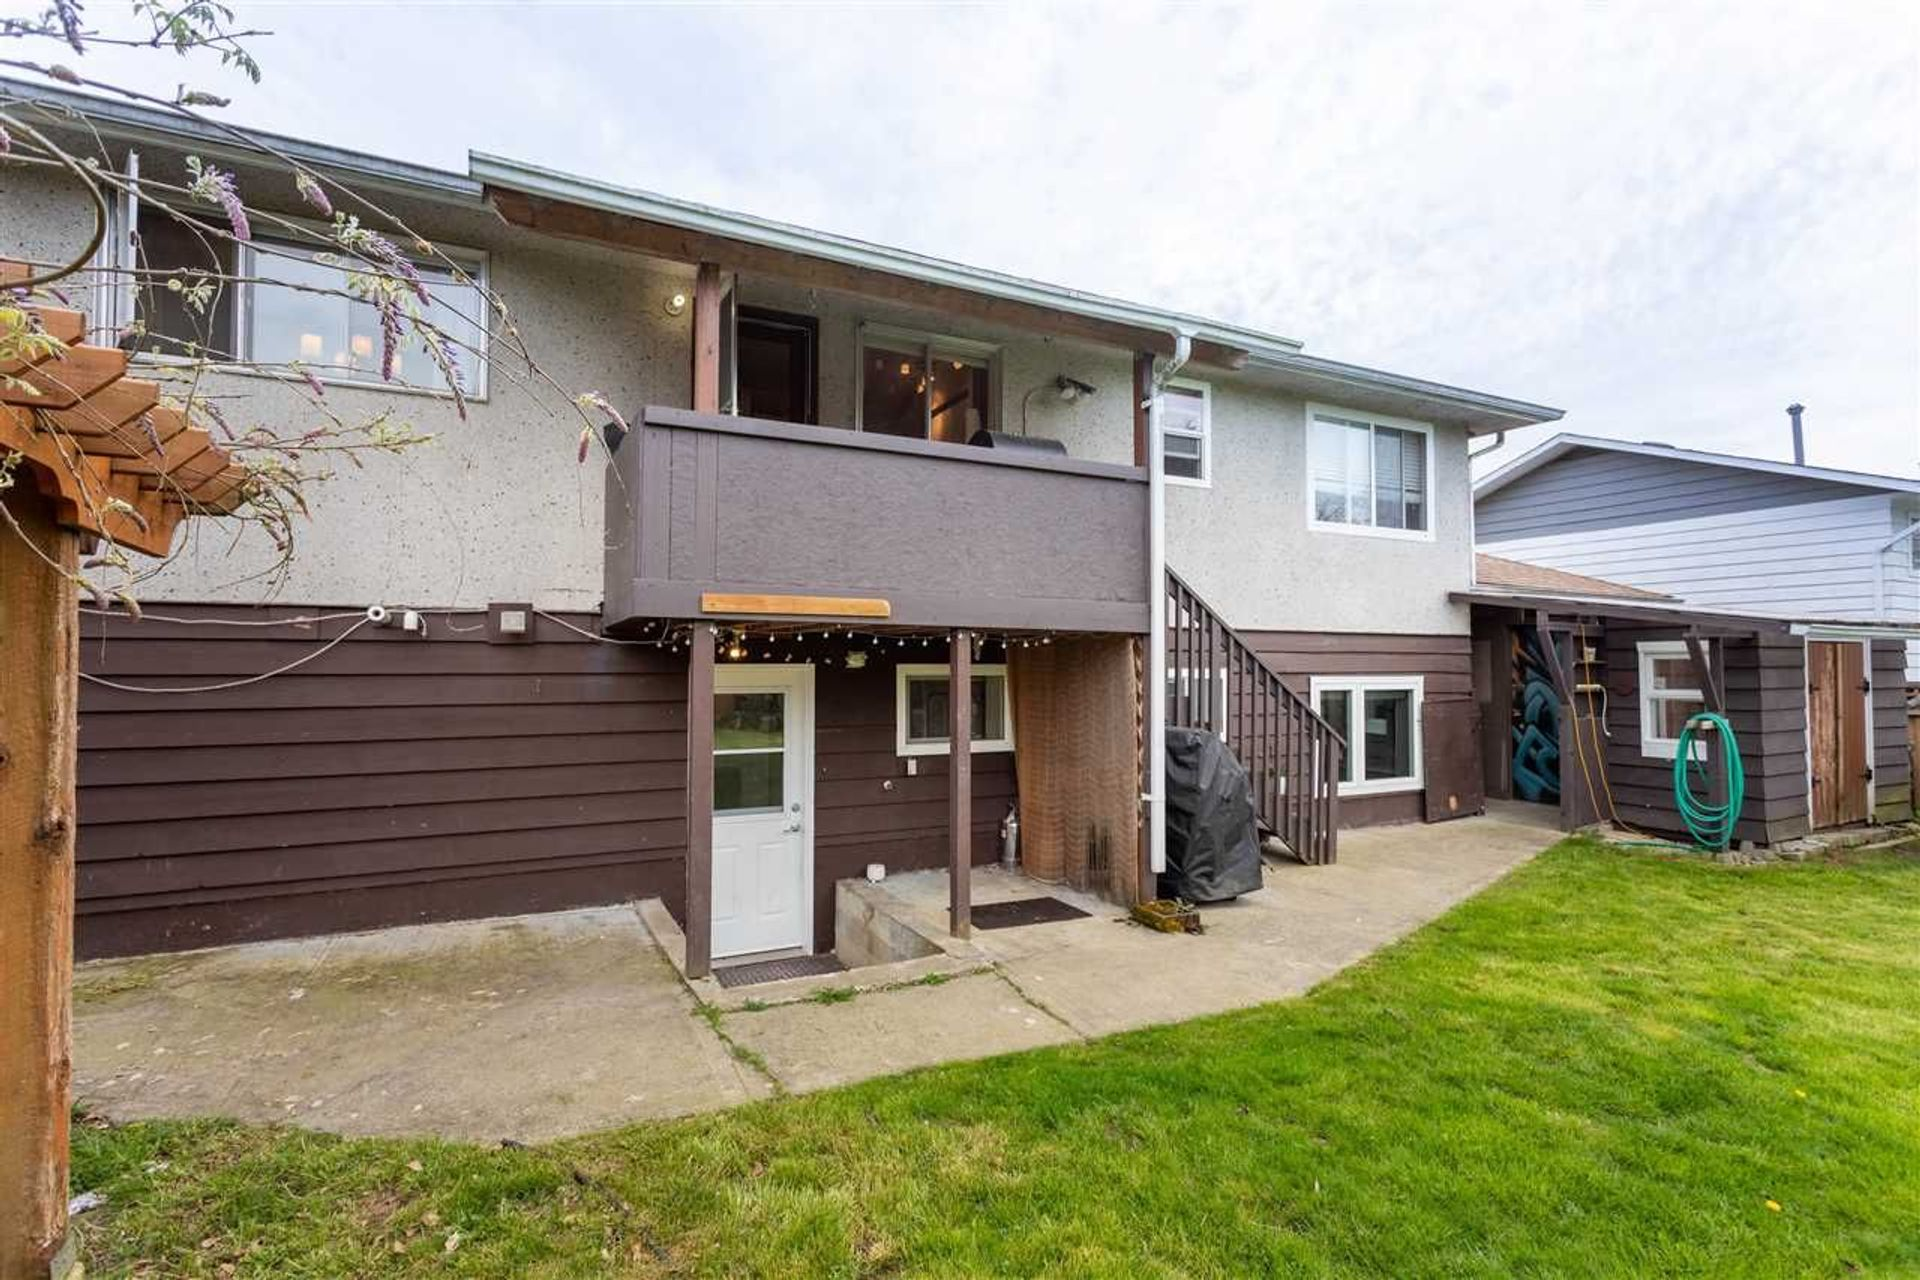 923-smith-avenue-coquitlam-west-coquitlam-18 at 923 Smith Avenue, Coquitlam West, Coquitlam